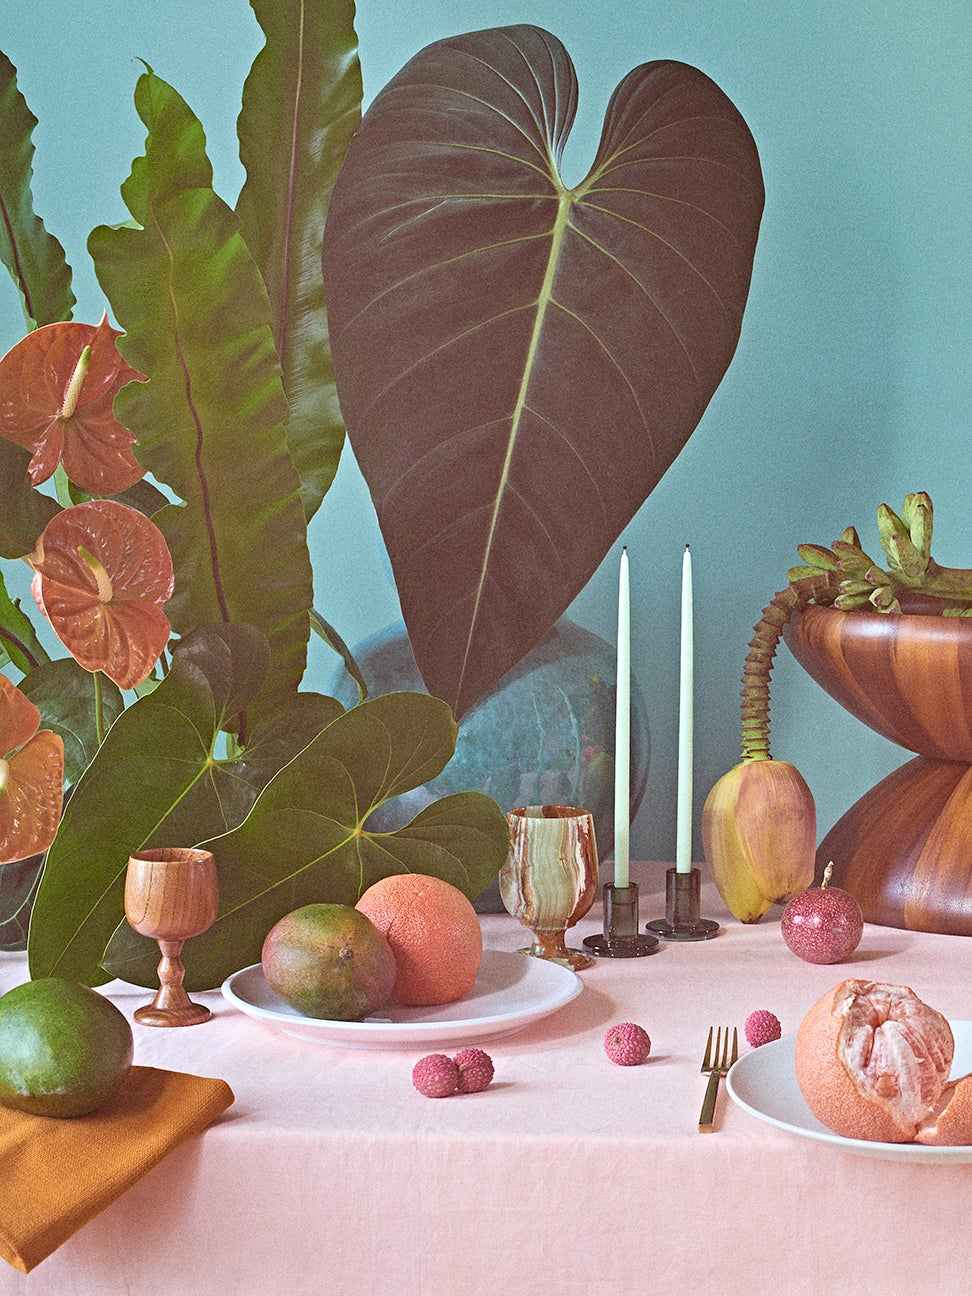 vignette with plants, candlesticks, and fruit